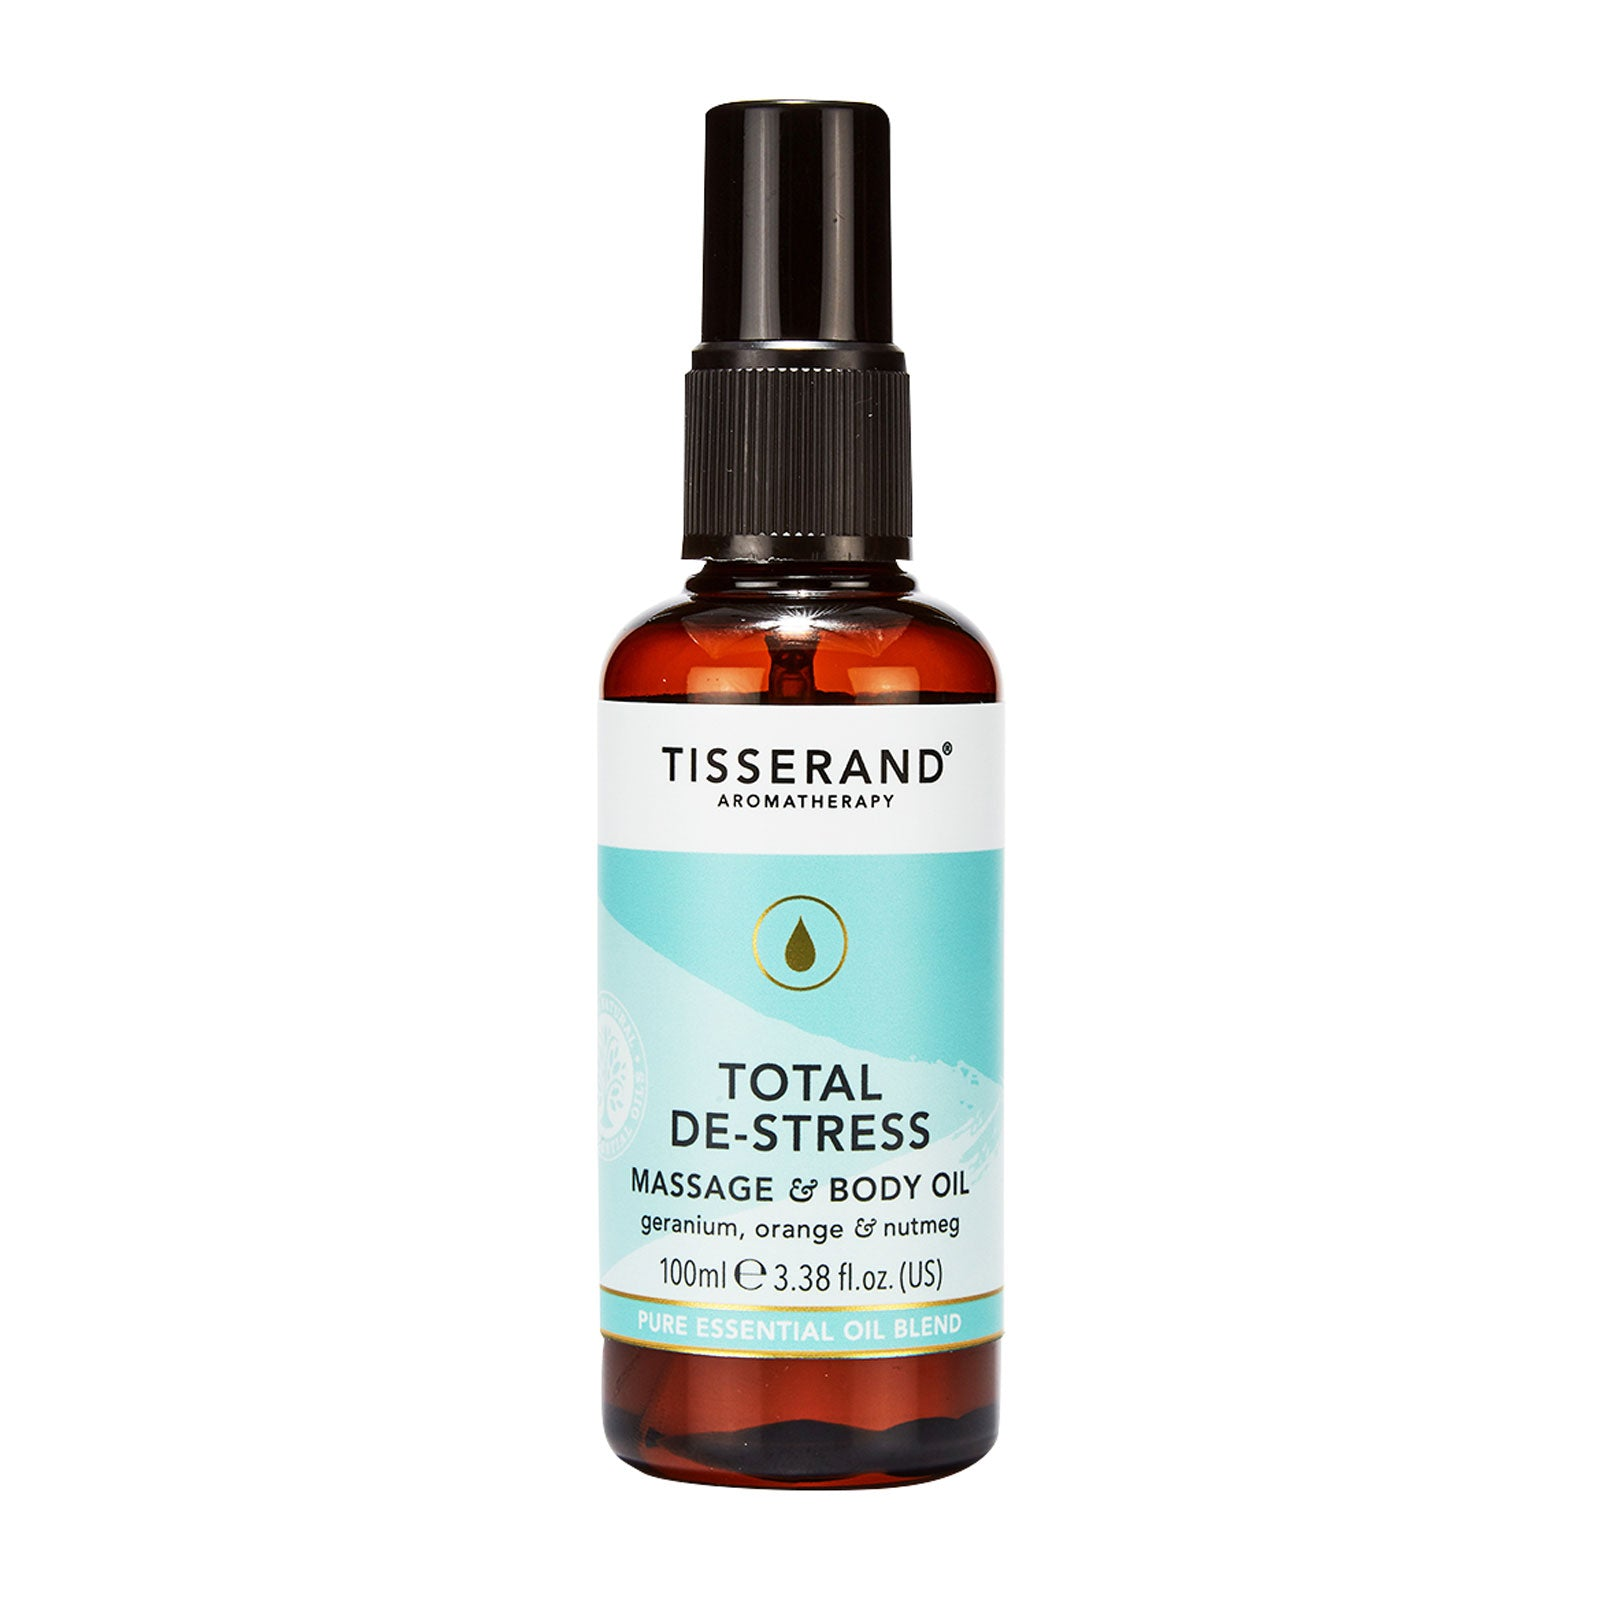 Tisserand De-Stress Body Oil 100ml